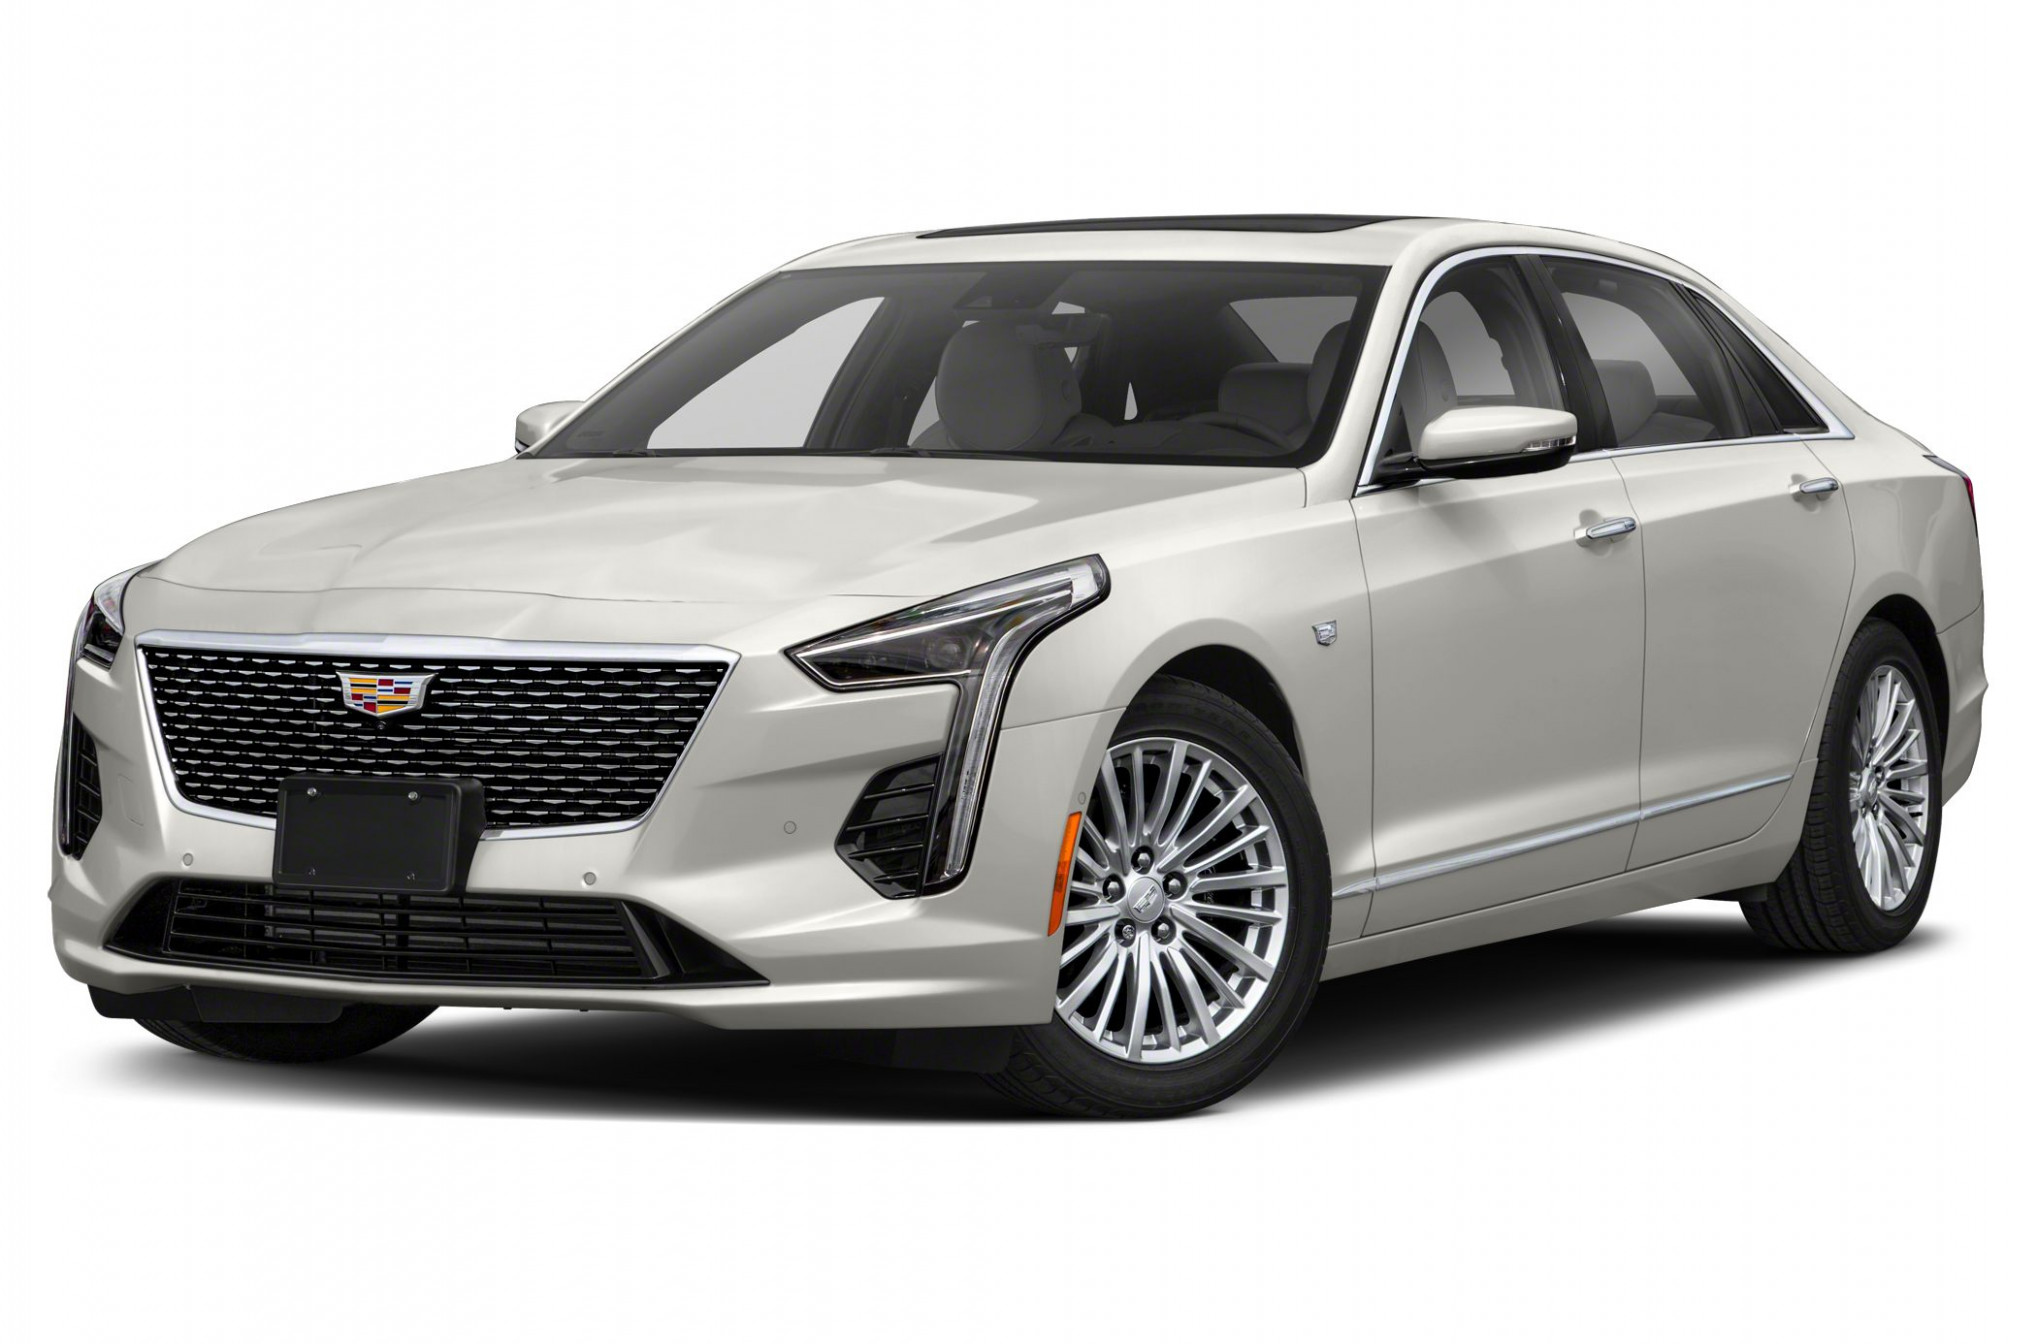 7 Cadillac CT7 7.7L Luxury 7dr All-wheel Drive Sedan Specs and Prices